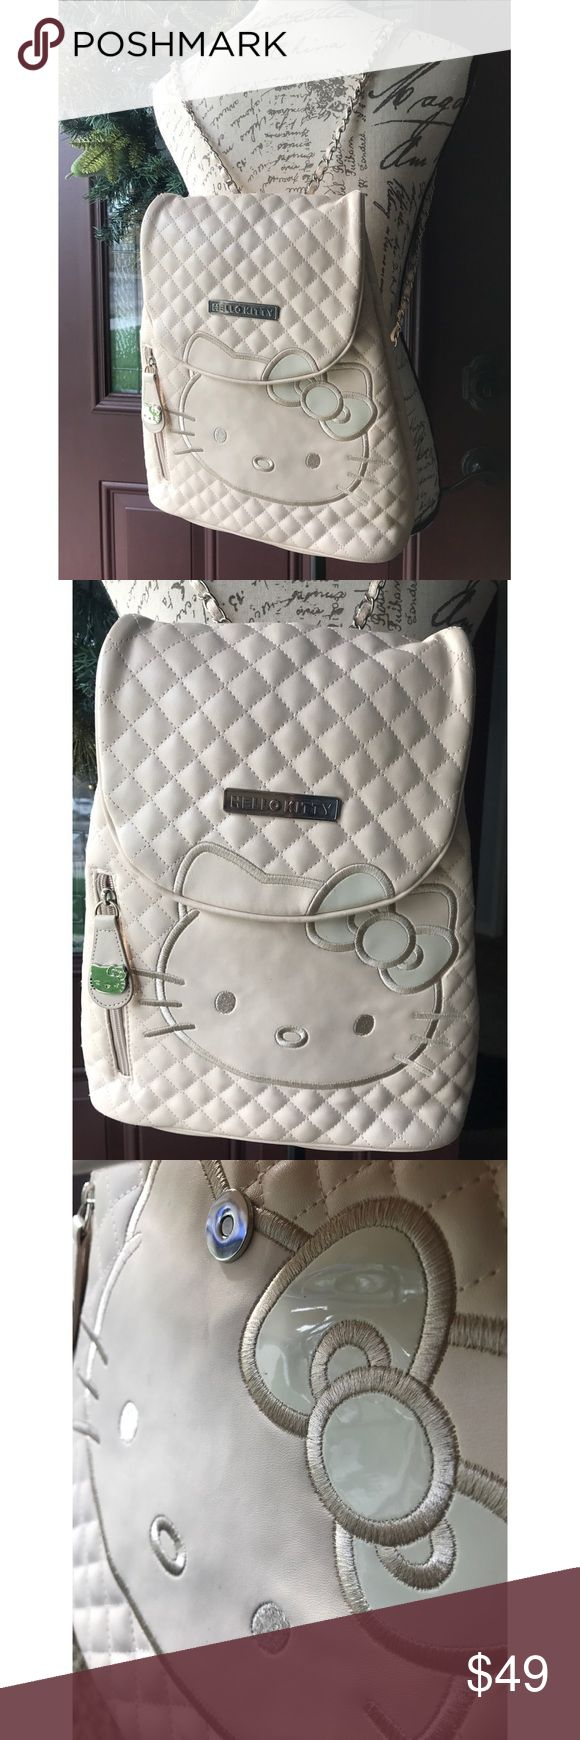 HELLO KITTY CREAM CHAIN STRAP BACKPACK New cream Hello Kitty chain strap backpack. With dustbag. Leather quilted . Patent leather hello kitty detail.  Silver chain strap. Side pocket. Pink signature lining. Hello Kitty Bags Backpacks